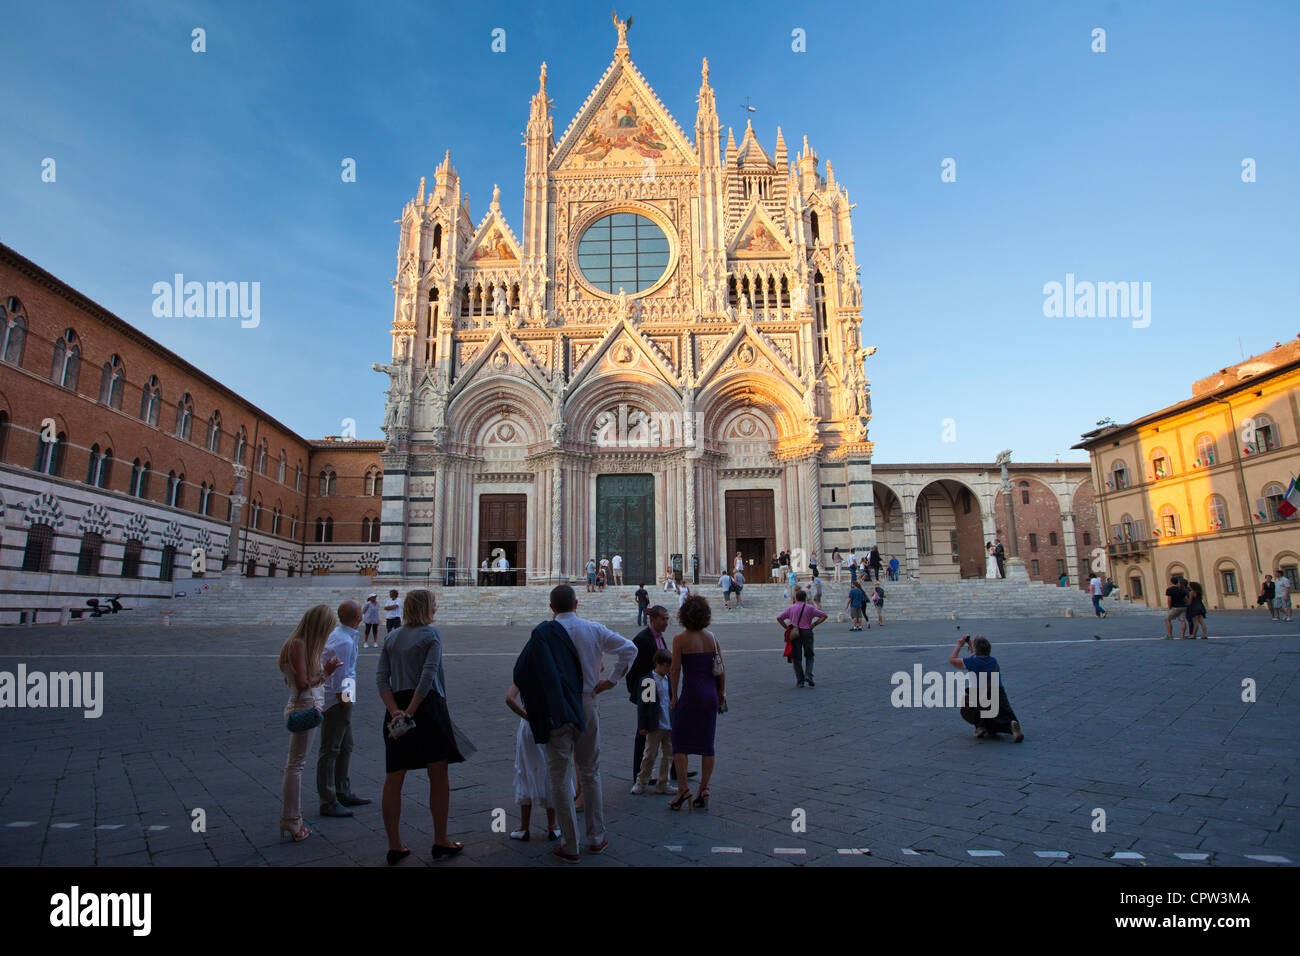 Tourists visit Il Duomo di Siena, the Cathedral of Siena, Italy - Stock Image